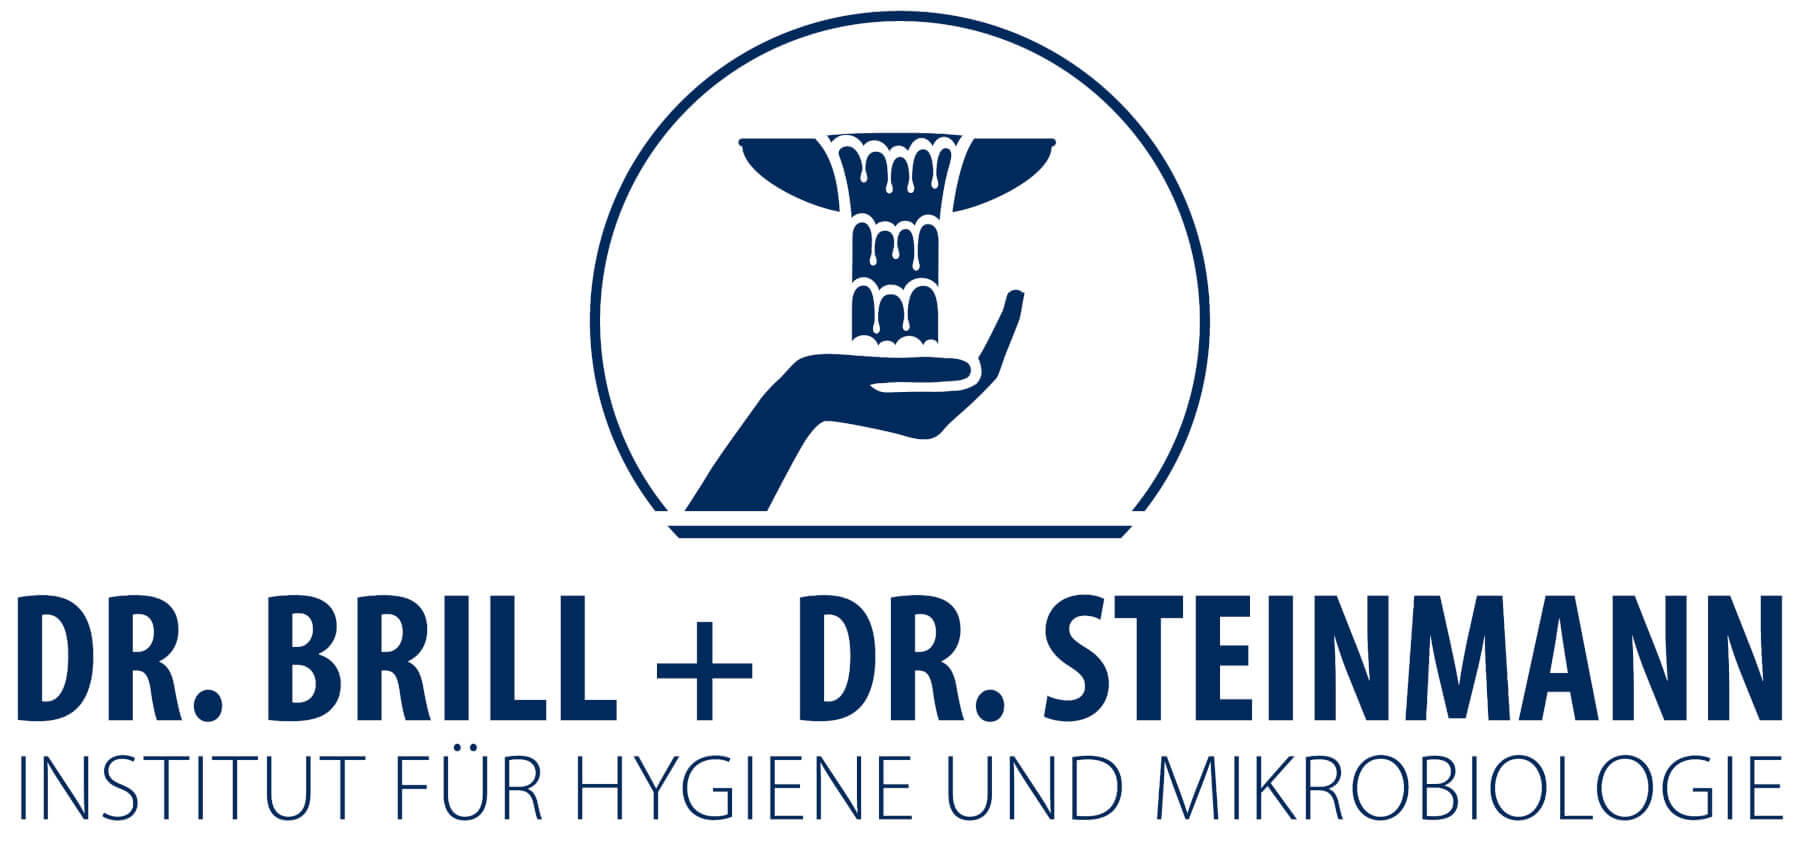 Display of the logo of Dr. Brill + Partner Institute for Hygiene and Microbiology